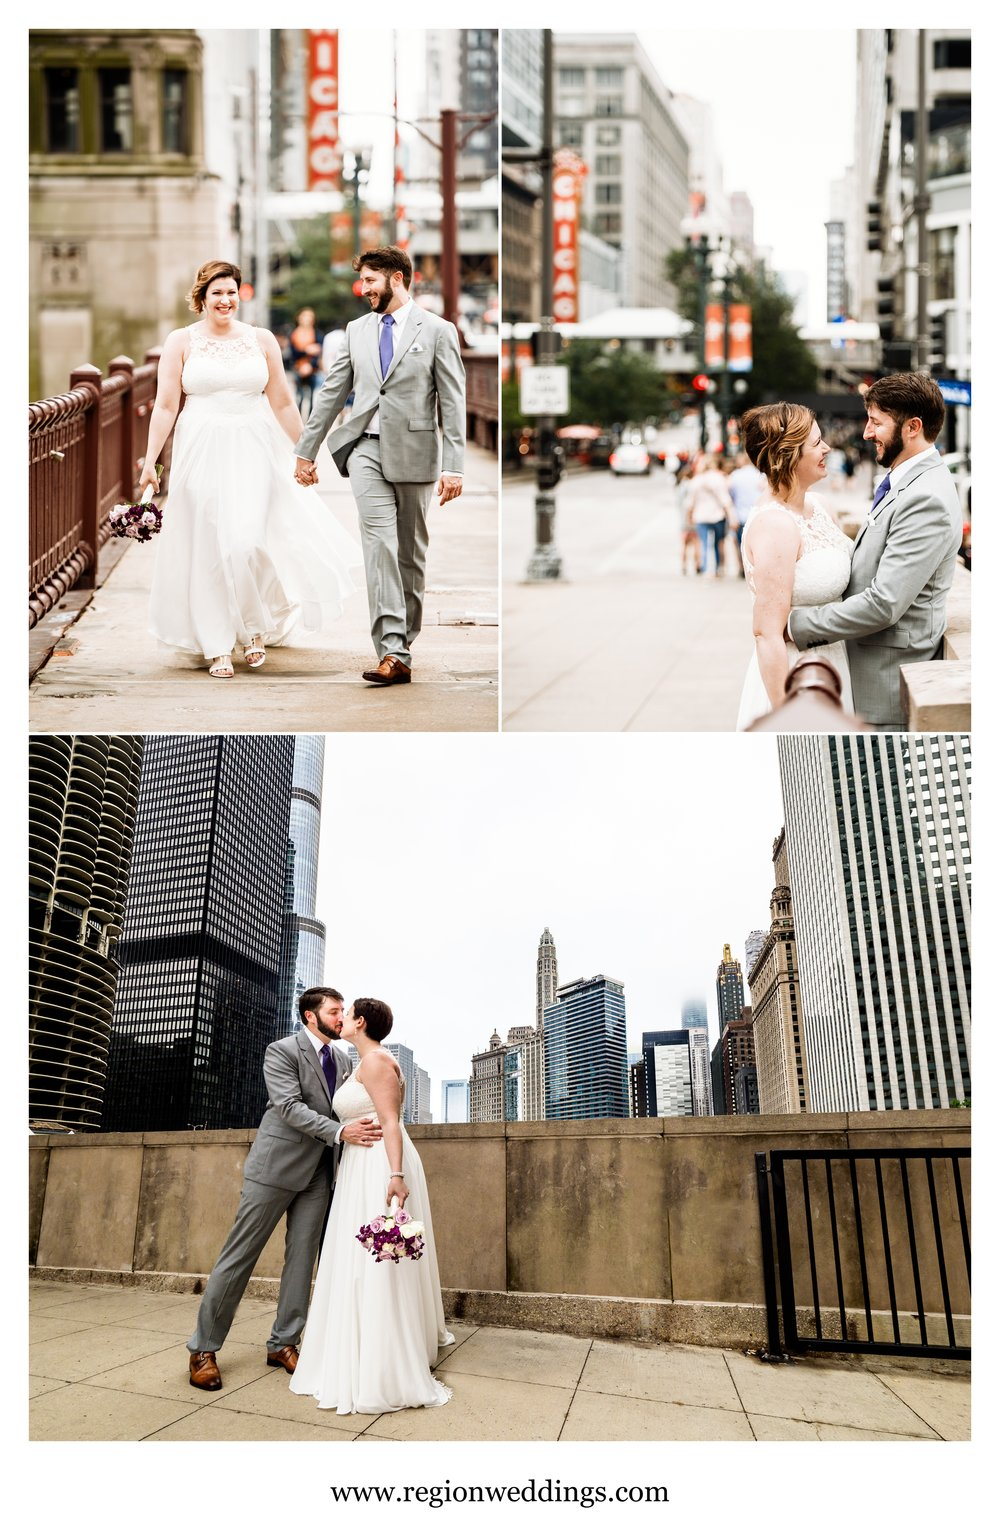 Wedding photos on the Dearborn and State Street bridges at the Chicago River.